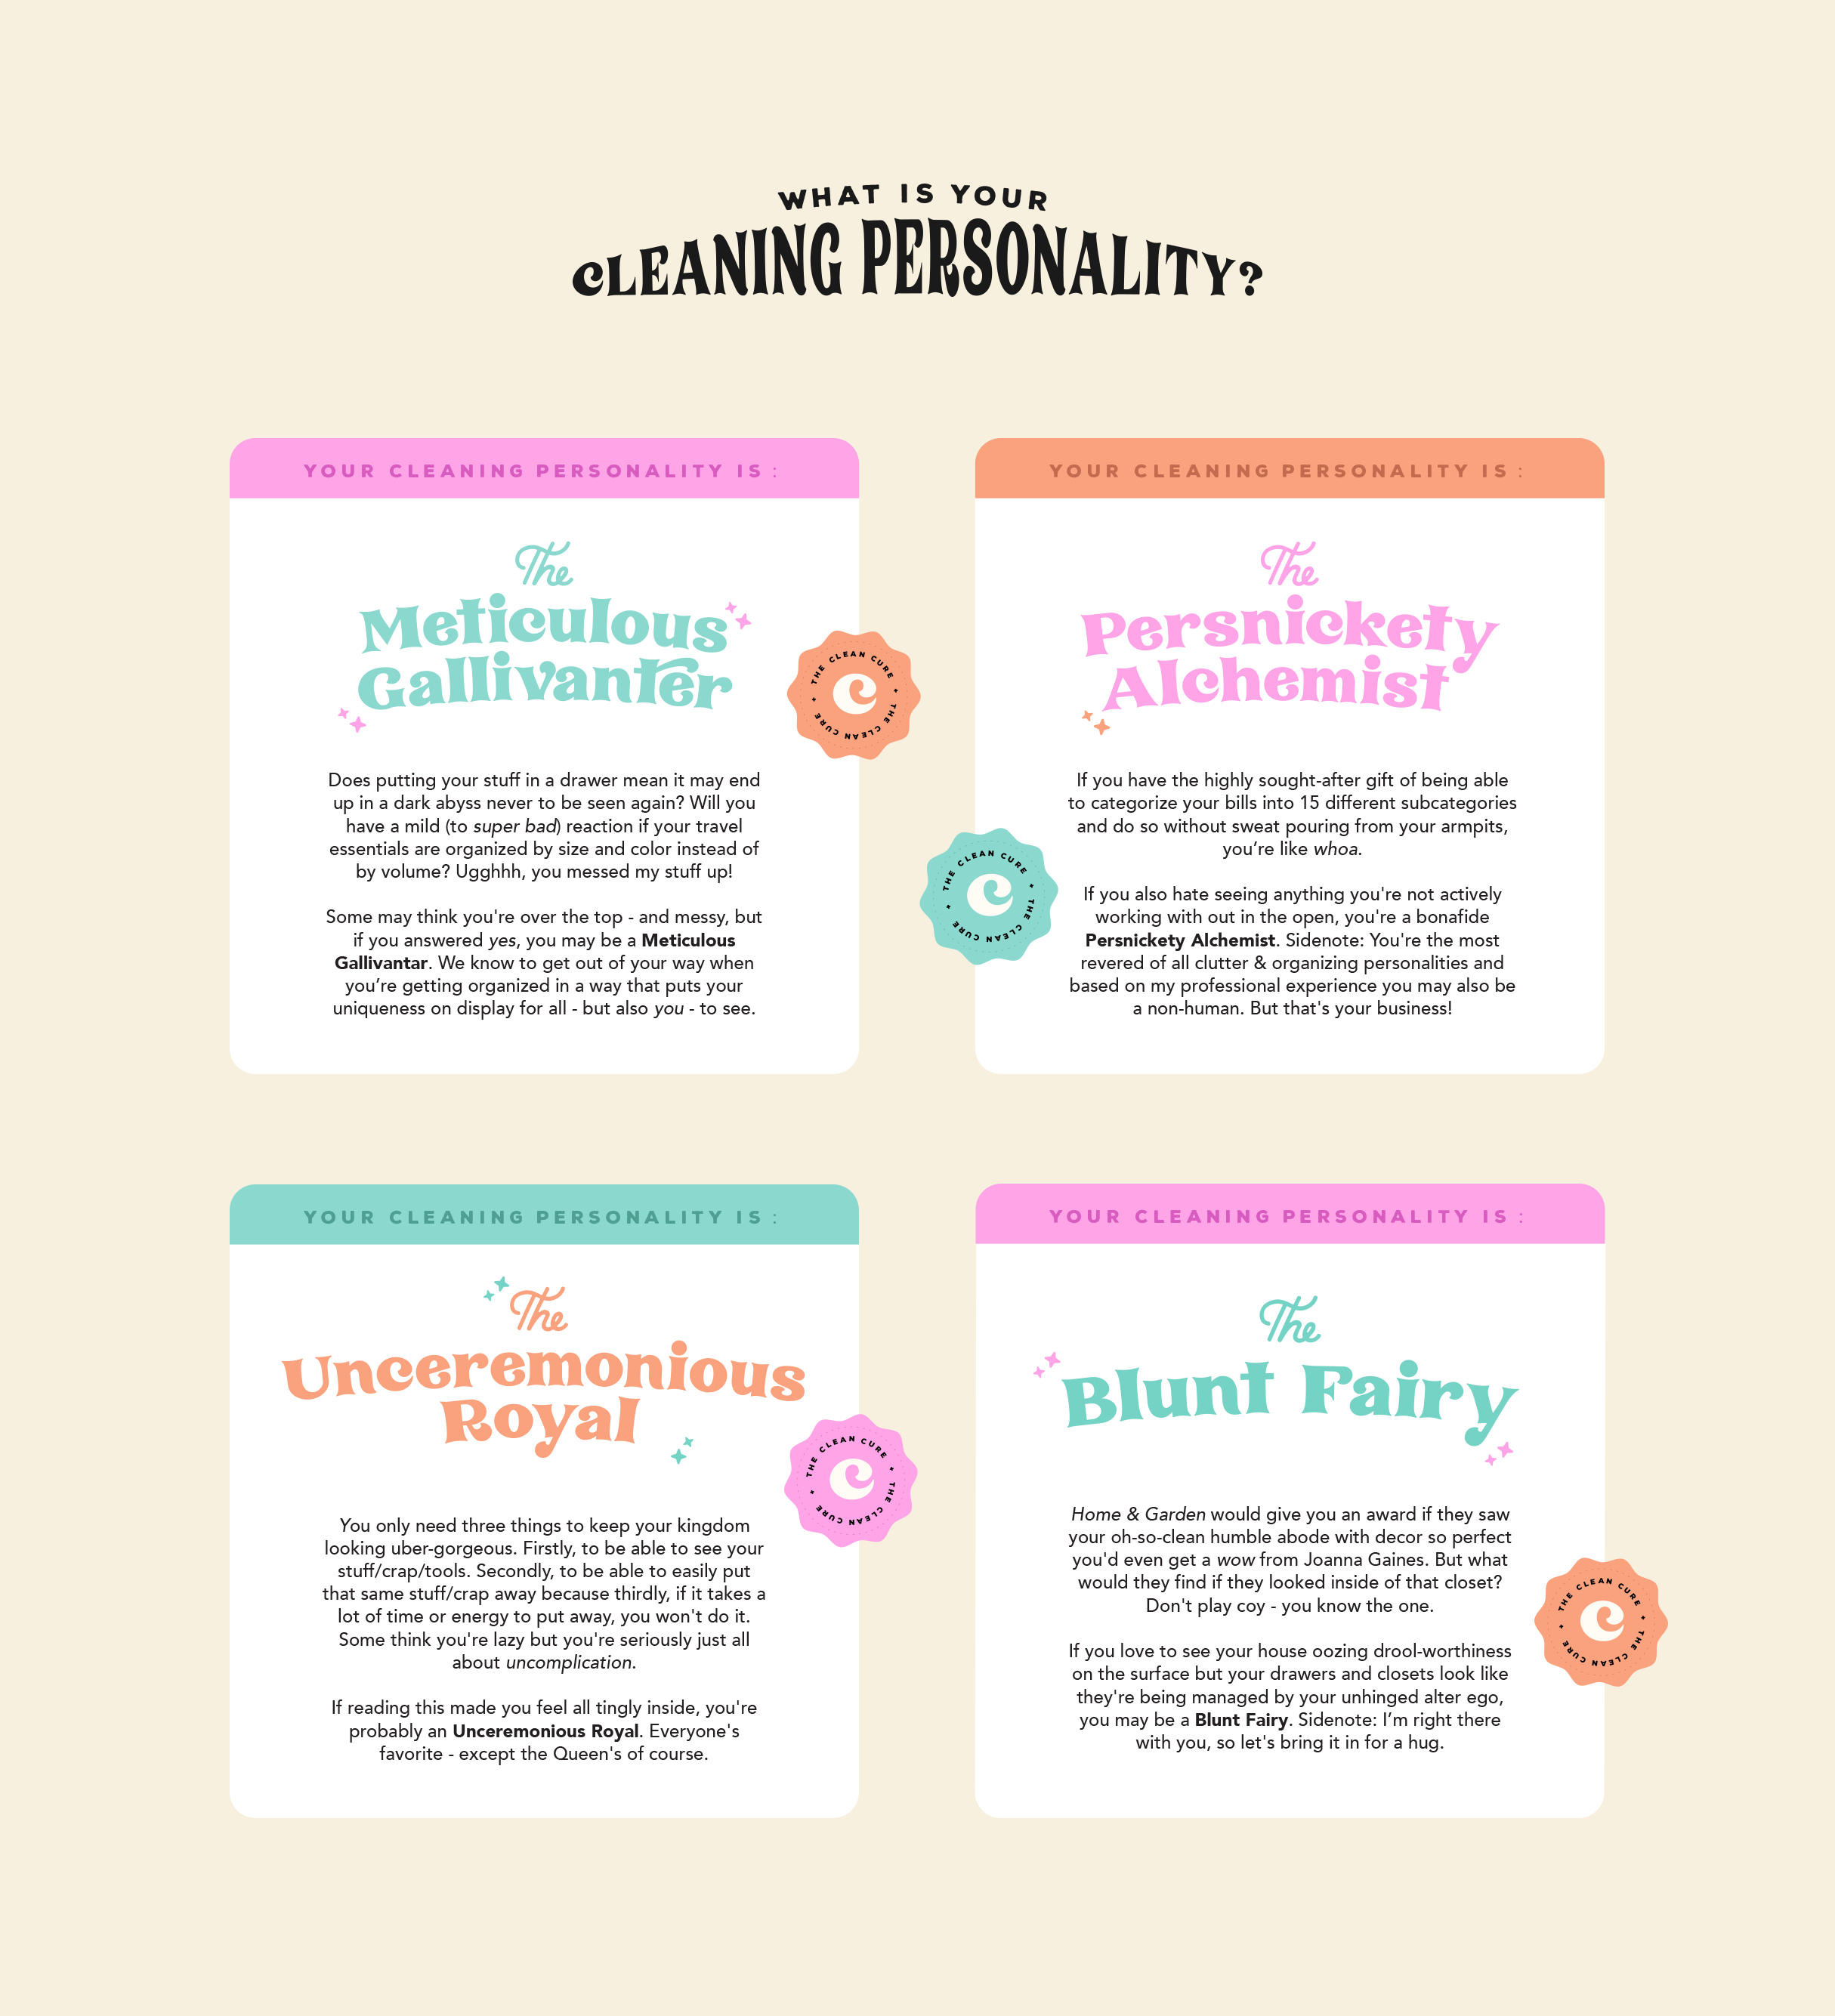 Cleaning personality cards for The Clean Cure, helping you get organised by delving to the root of the problem - designed by Wiltshire-based graphic designer, Kaye Huett